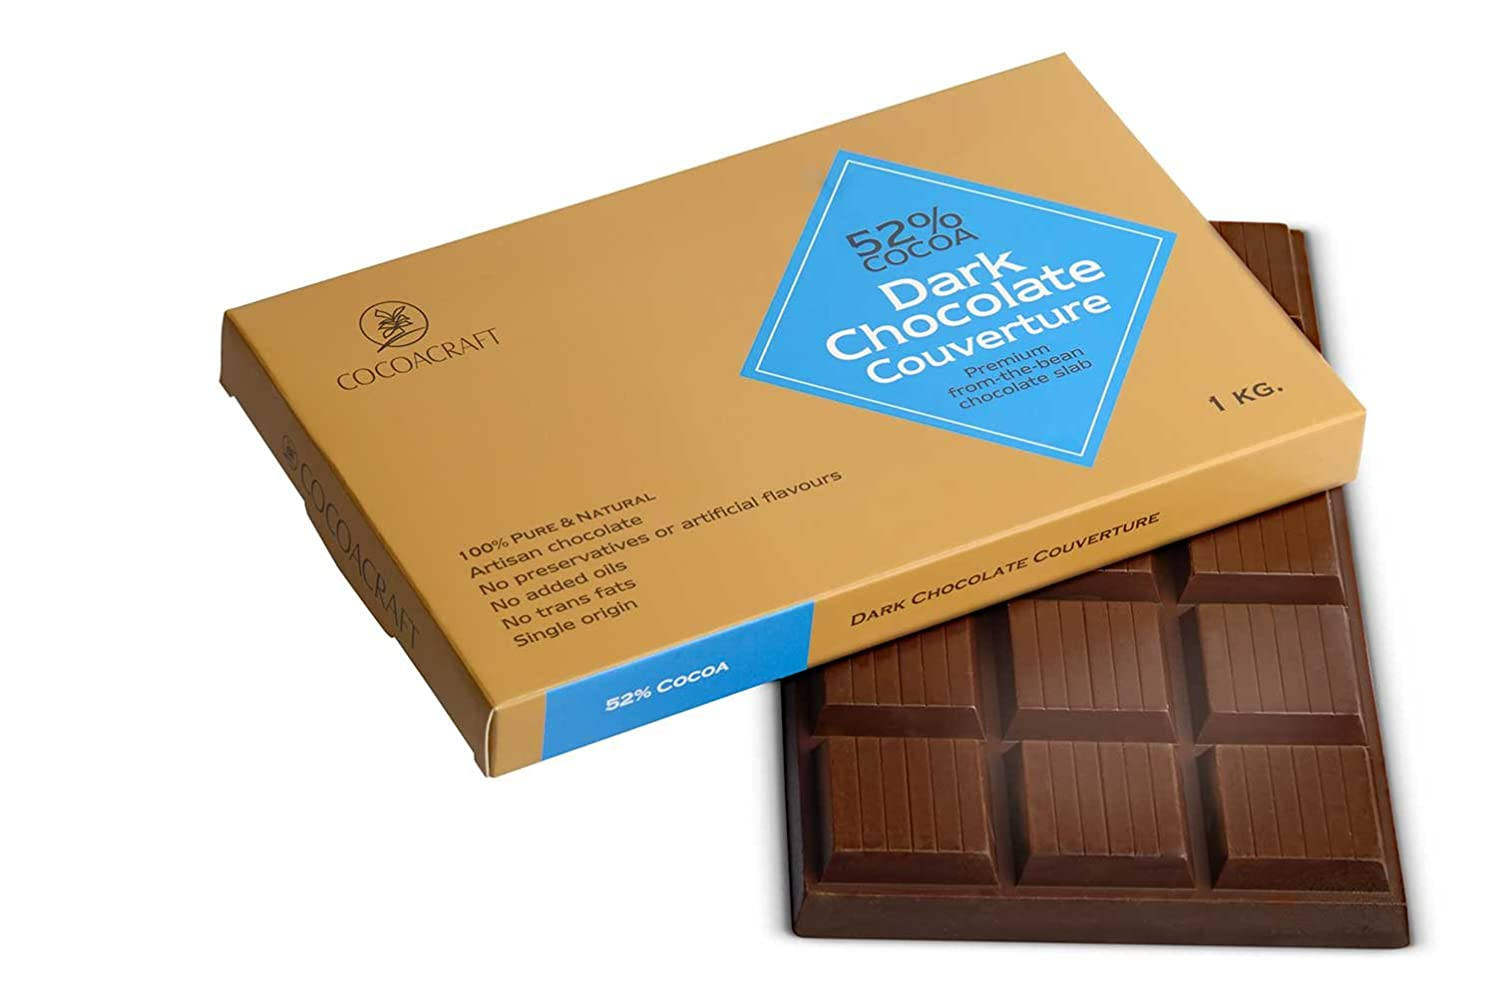 Cocoacraft 52% Dark Chocolate Couverture, 1 kg: Amazon.in: Grocery ...